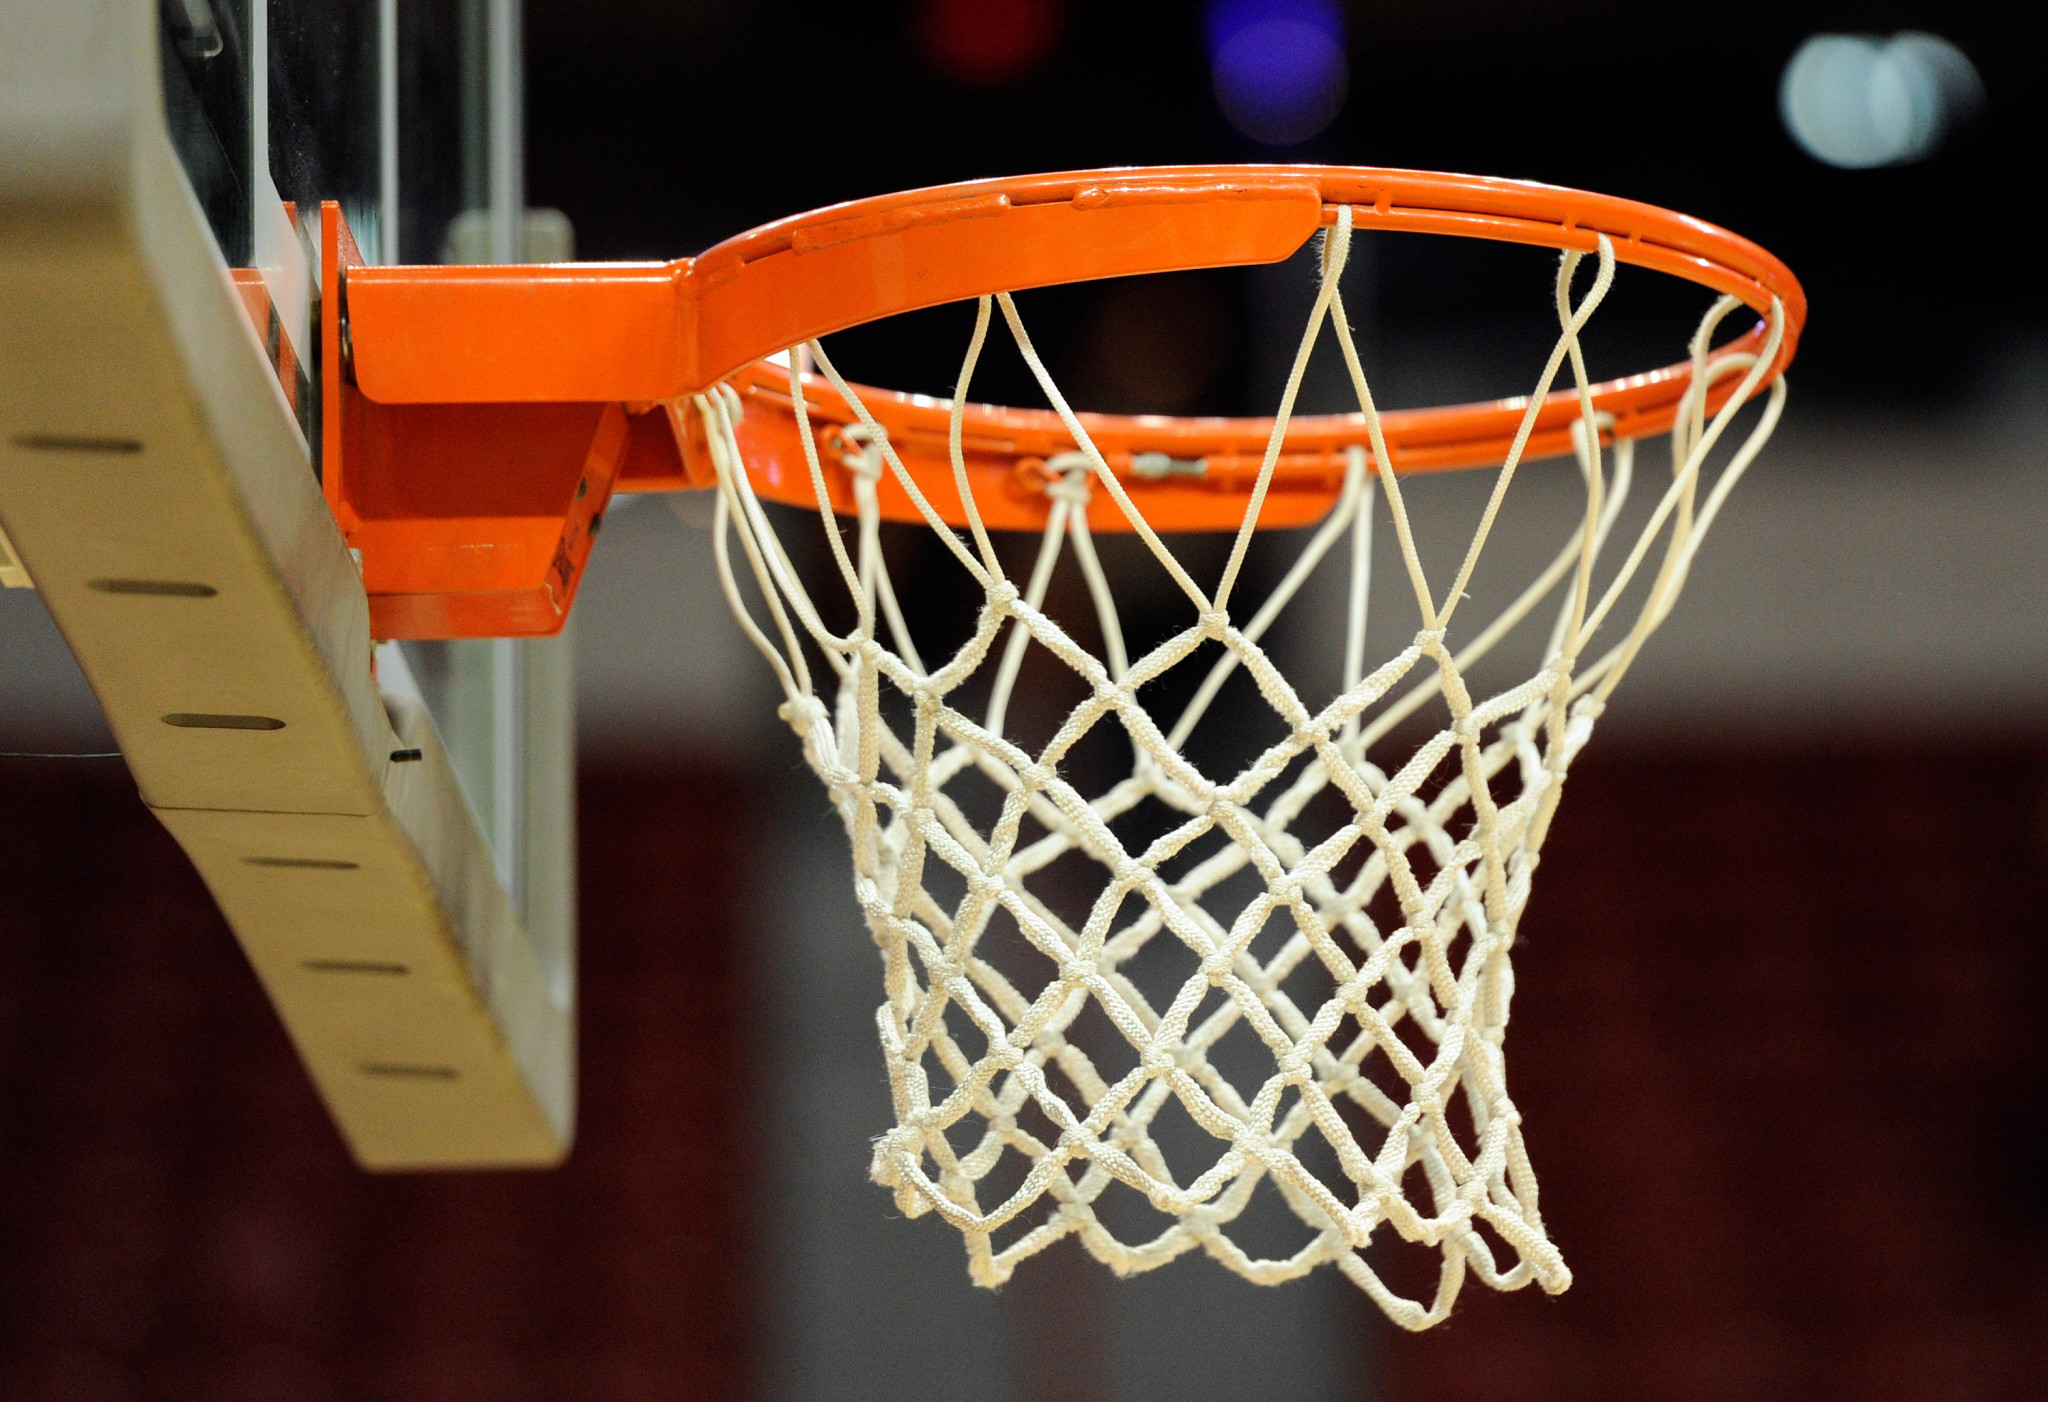 FIBA Europe reallocates postponed events to same hosts in 2022